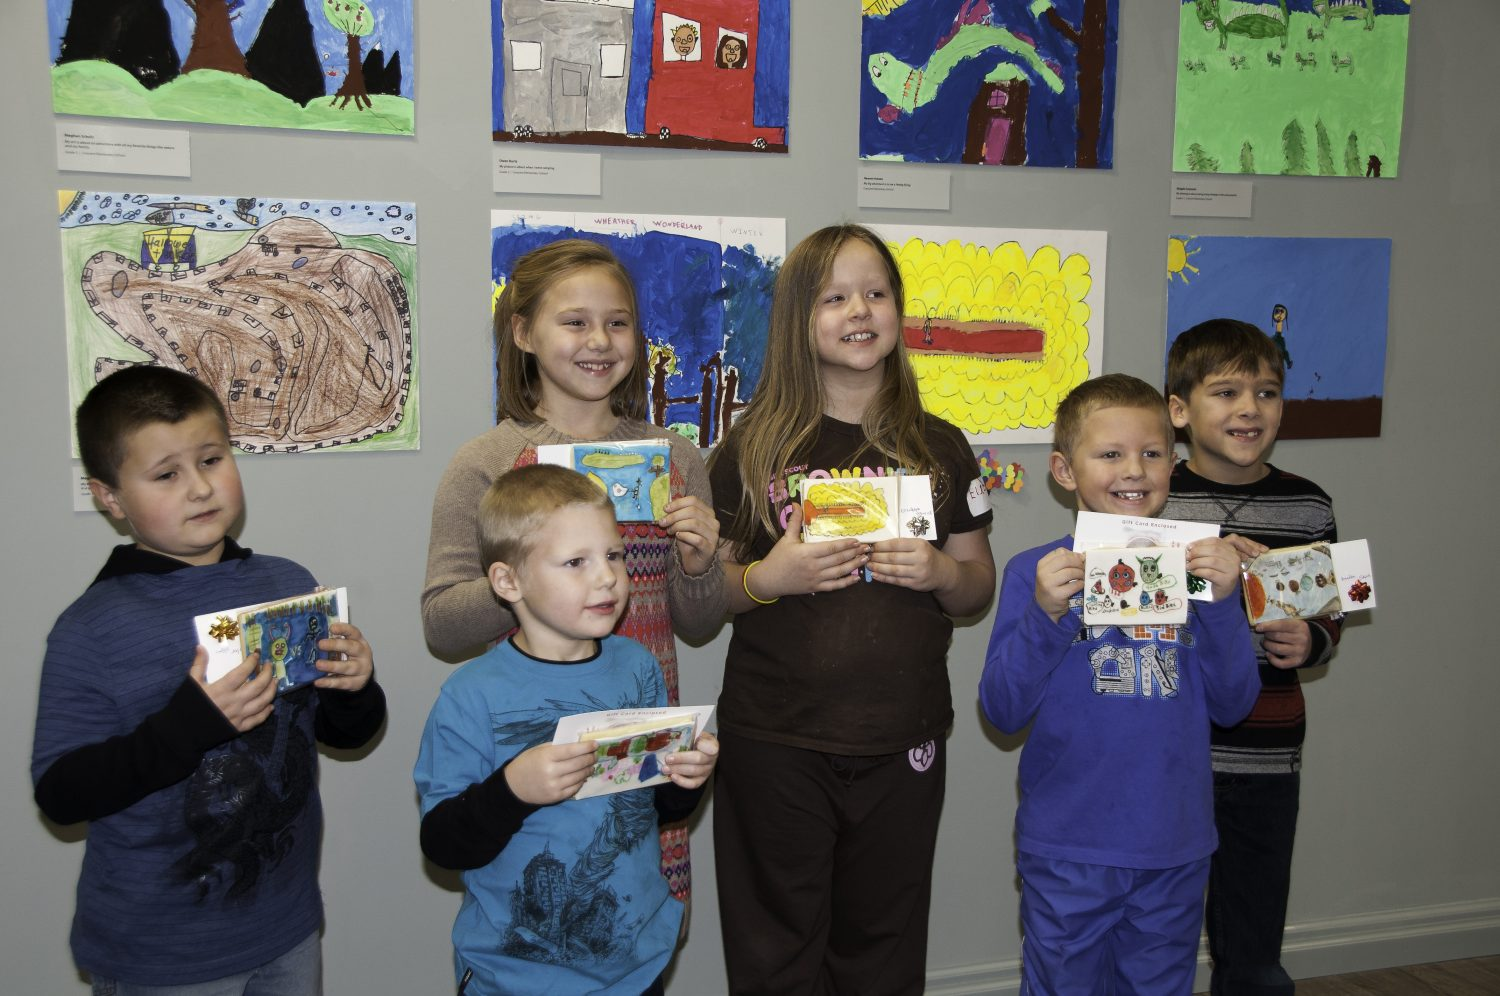 These are the proud winners of the ArtStart FishPrize Competition. Students' work was displayed in the ArtStart Galleries and celebrated with an artists' reception.